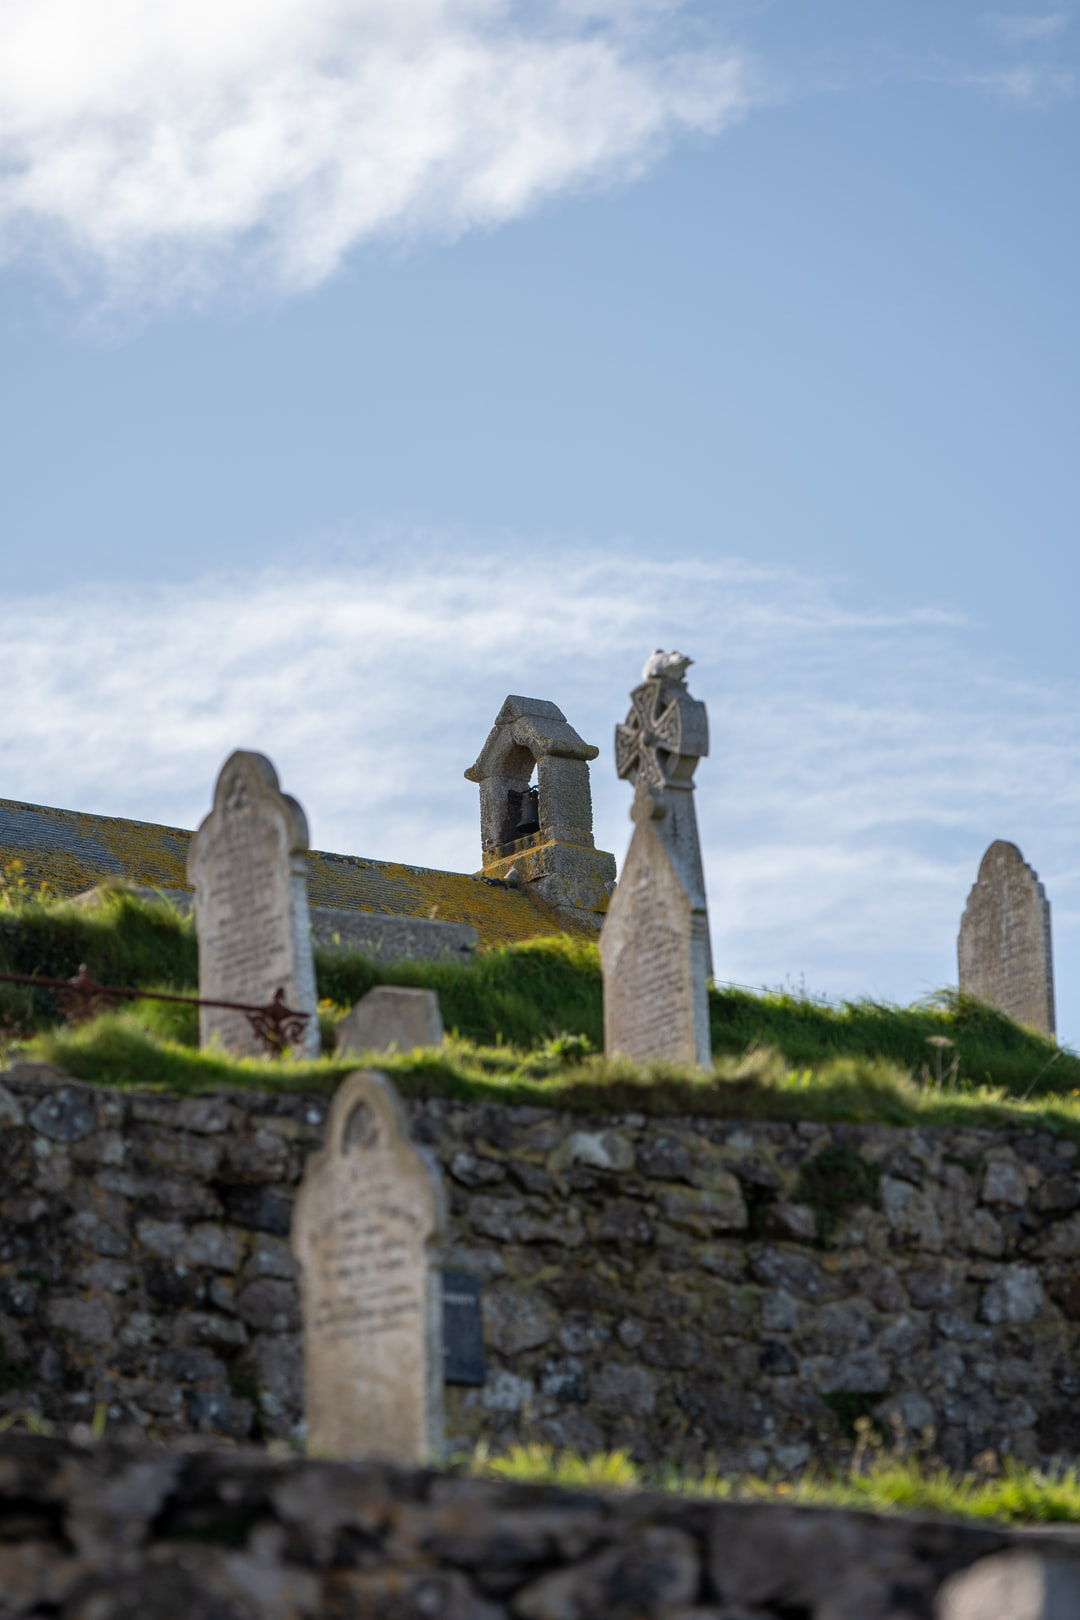 Looking up to Church in St Ives.